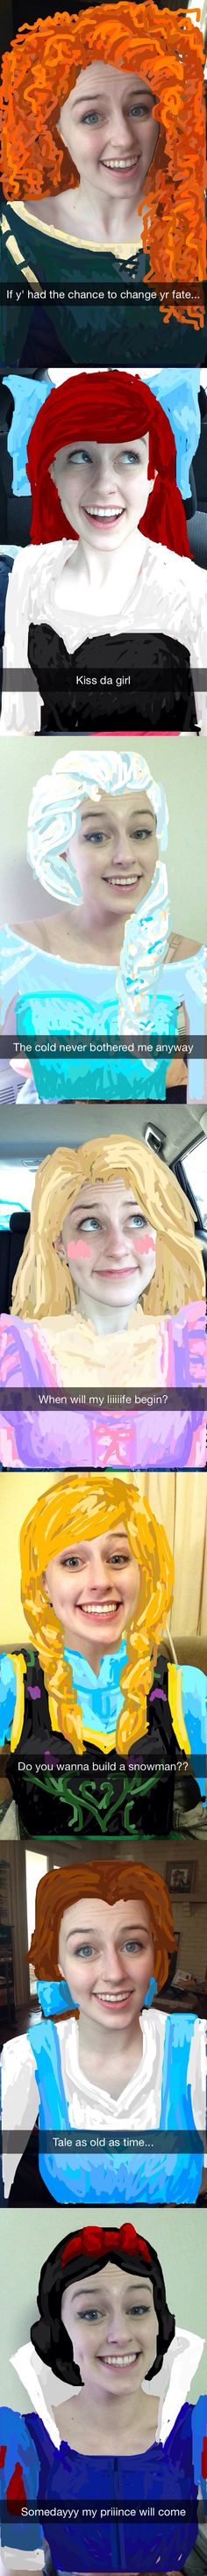 HOW IS THIS POSSIBLE. DOES SHE DO ANYTHING ELSE WITH HER LIFE?? Disney Princess Snapchats, I want to try